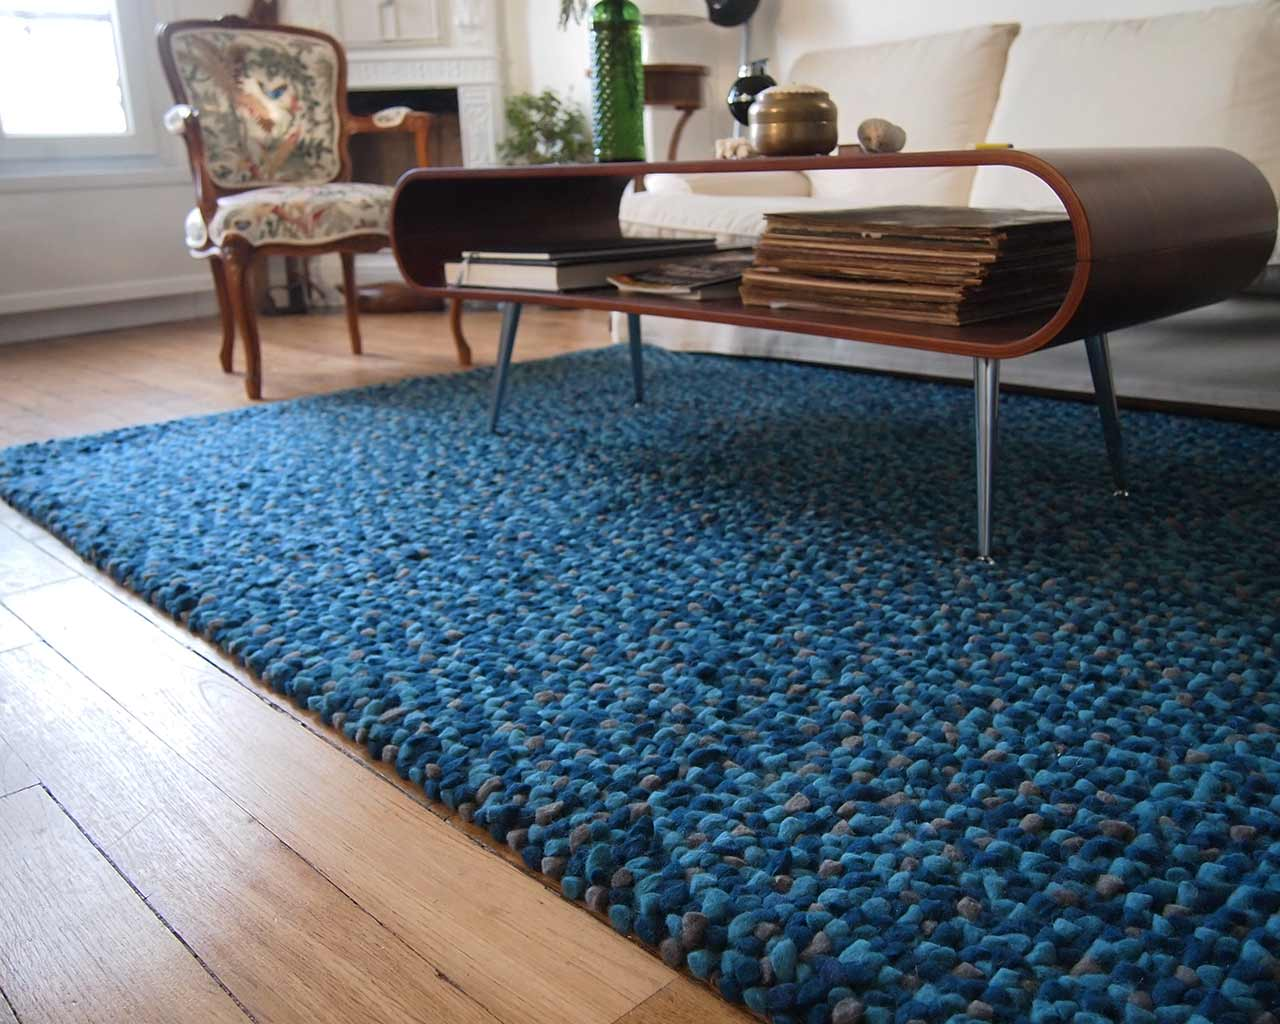 blue colors handmade carpet wool felt living room design furniture